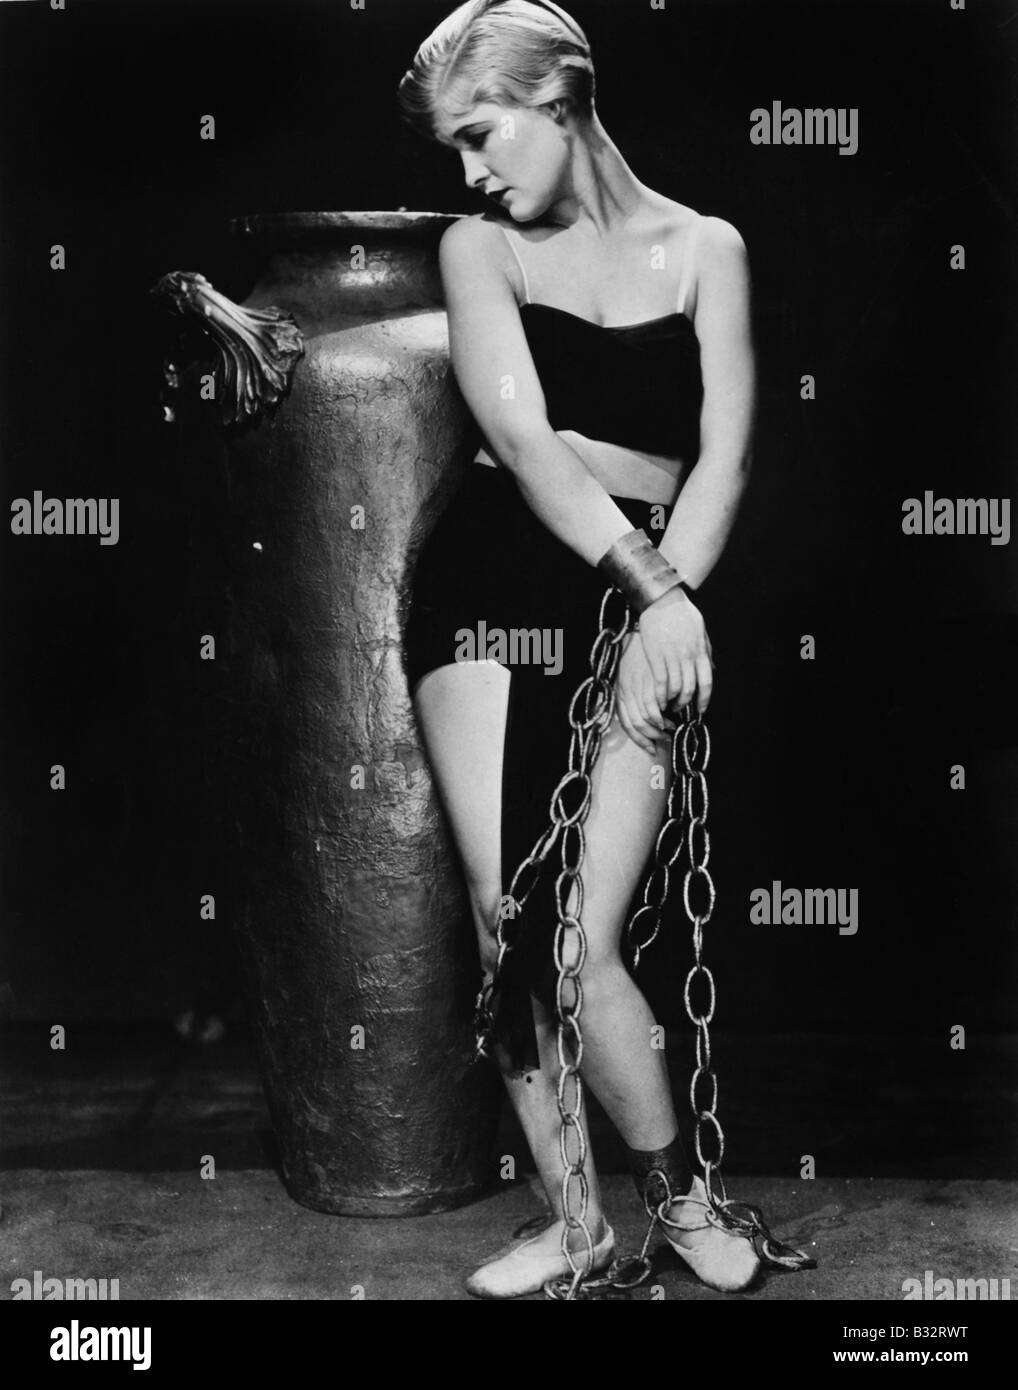 Woman chained in front of a big vase Stock Photo